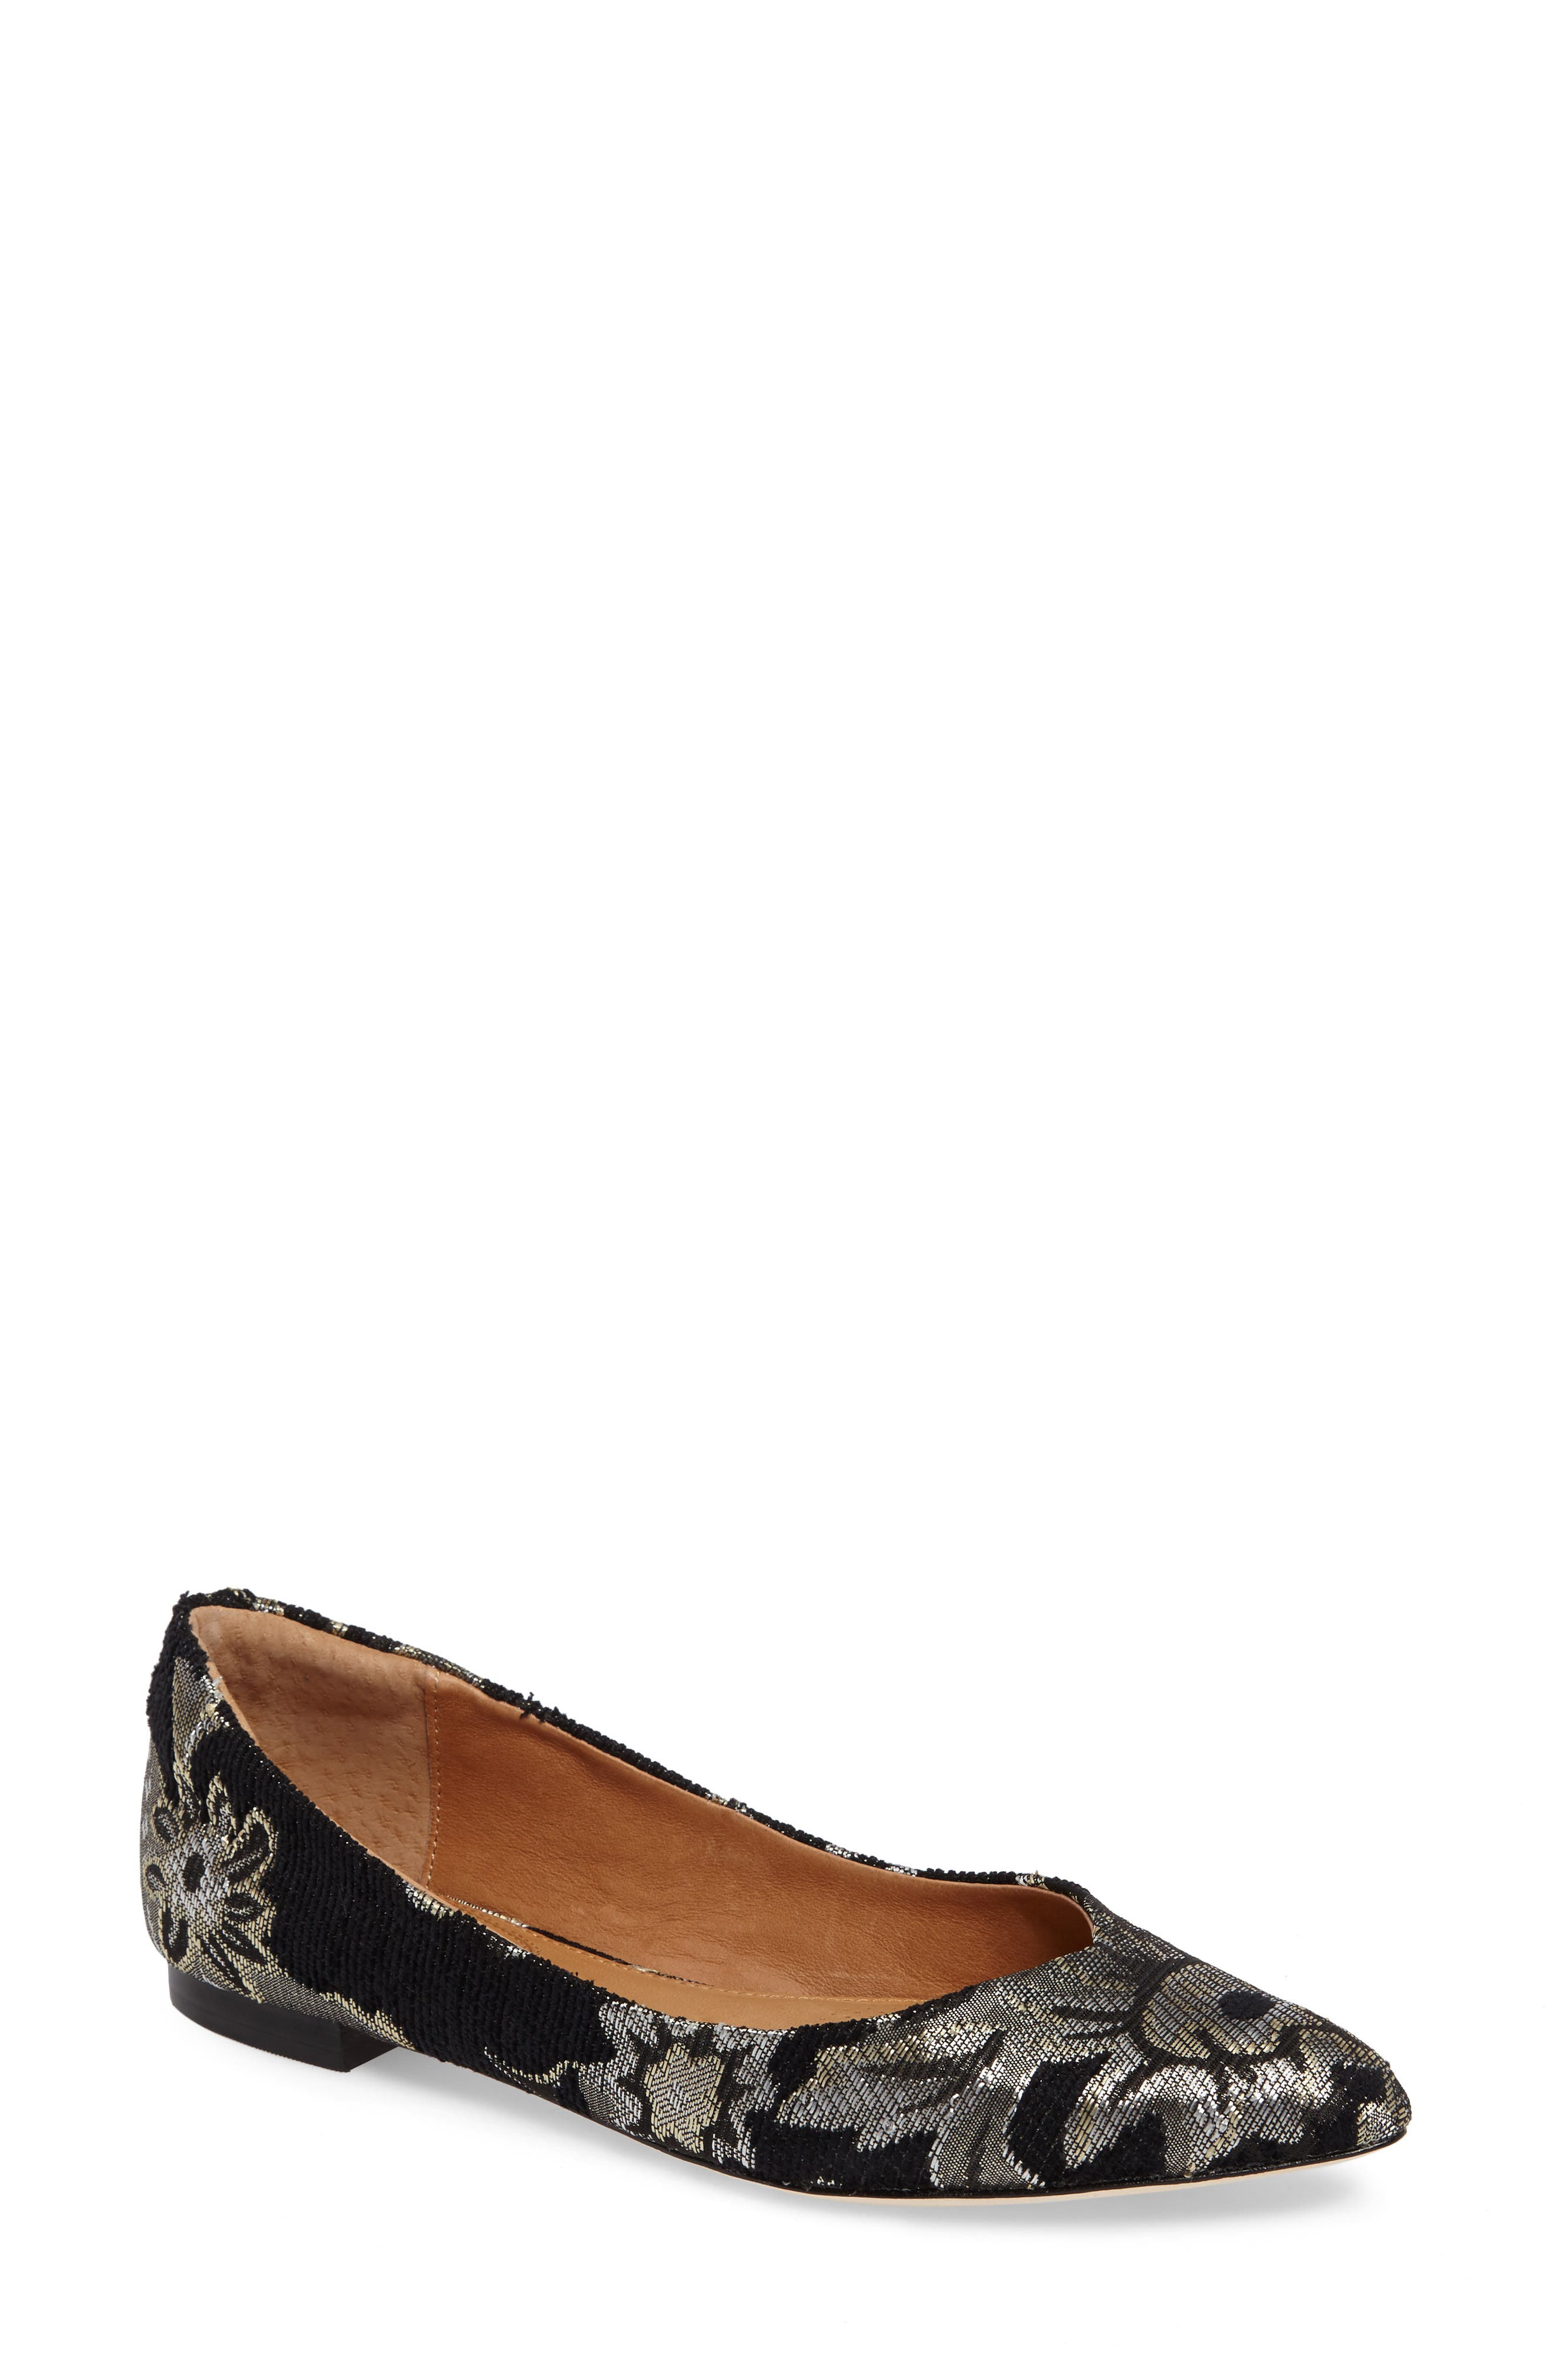 Julia Pointy Toe Flat,                             Main thumbnail 1, color,                             Black Brocade Leather